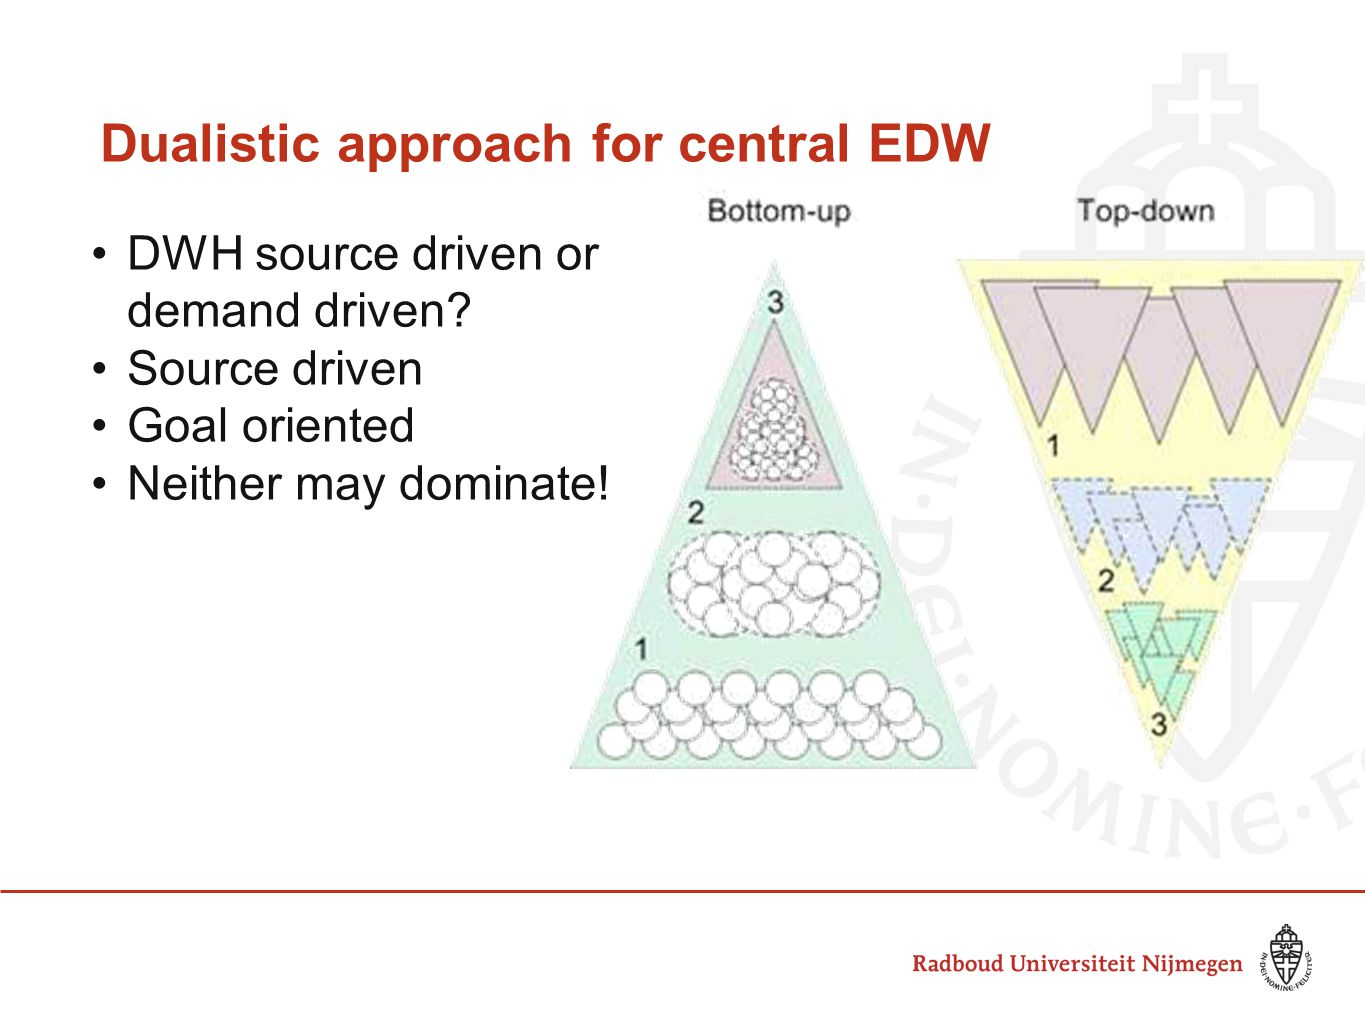 Dualistic approach for central EDW